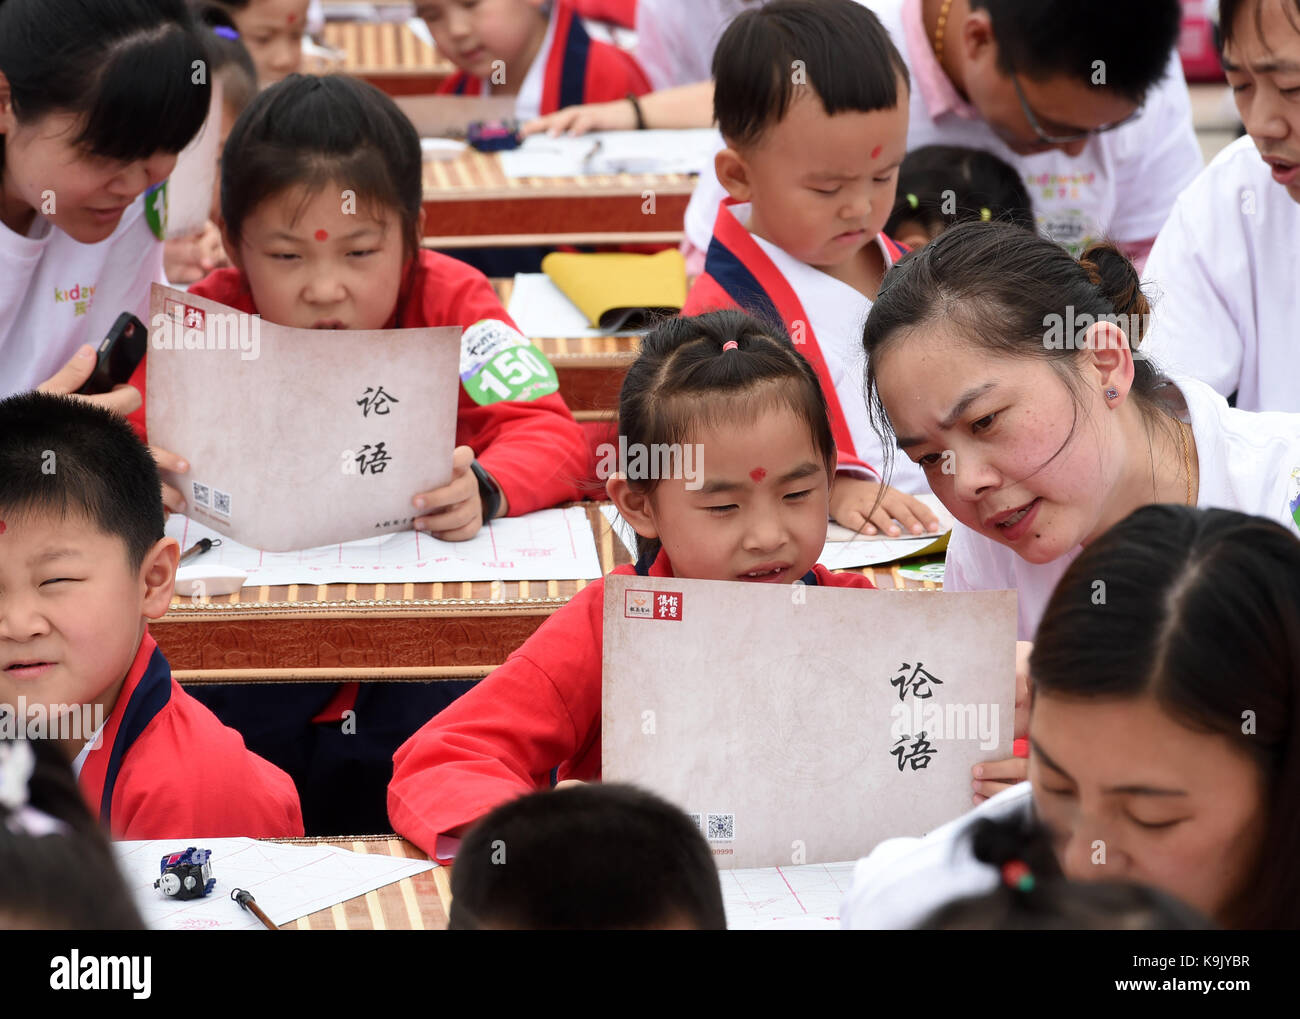 Nanjing, China's Jiangsu Province. 23rd Sep, 2017. Children accompanied by their parents attend a first writing - Stock Image